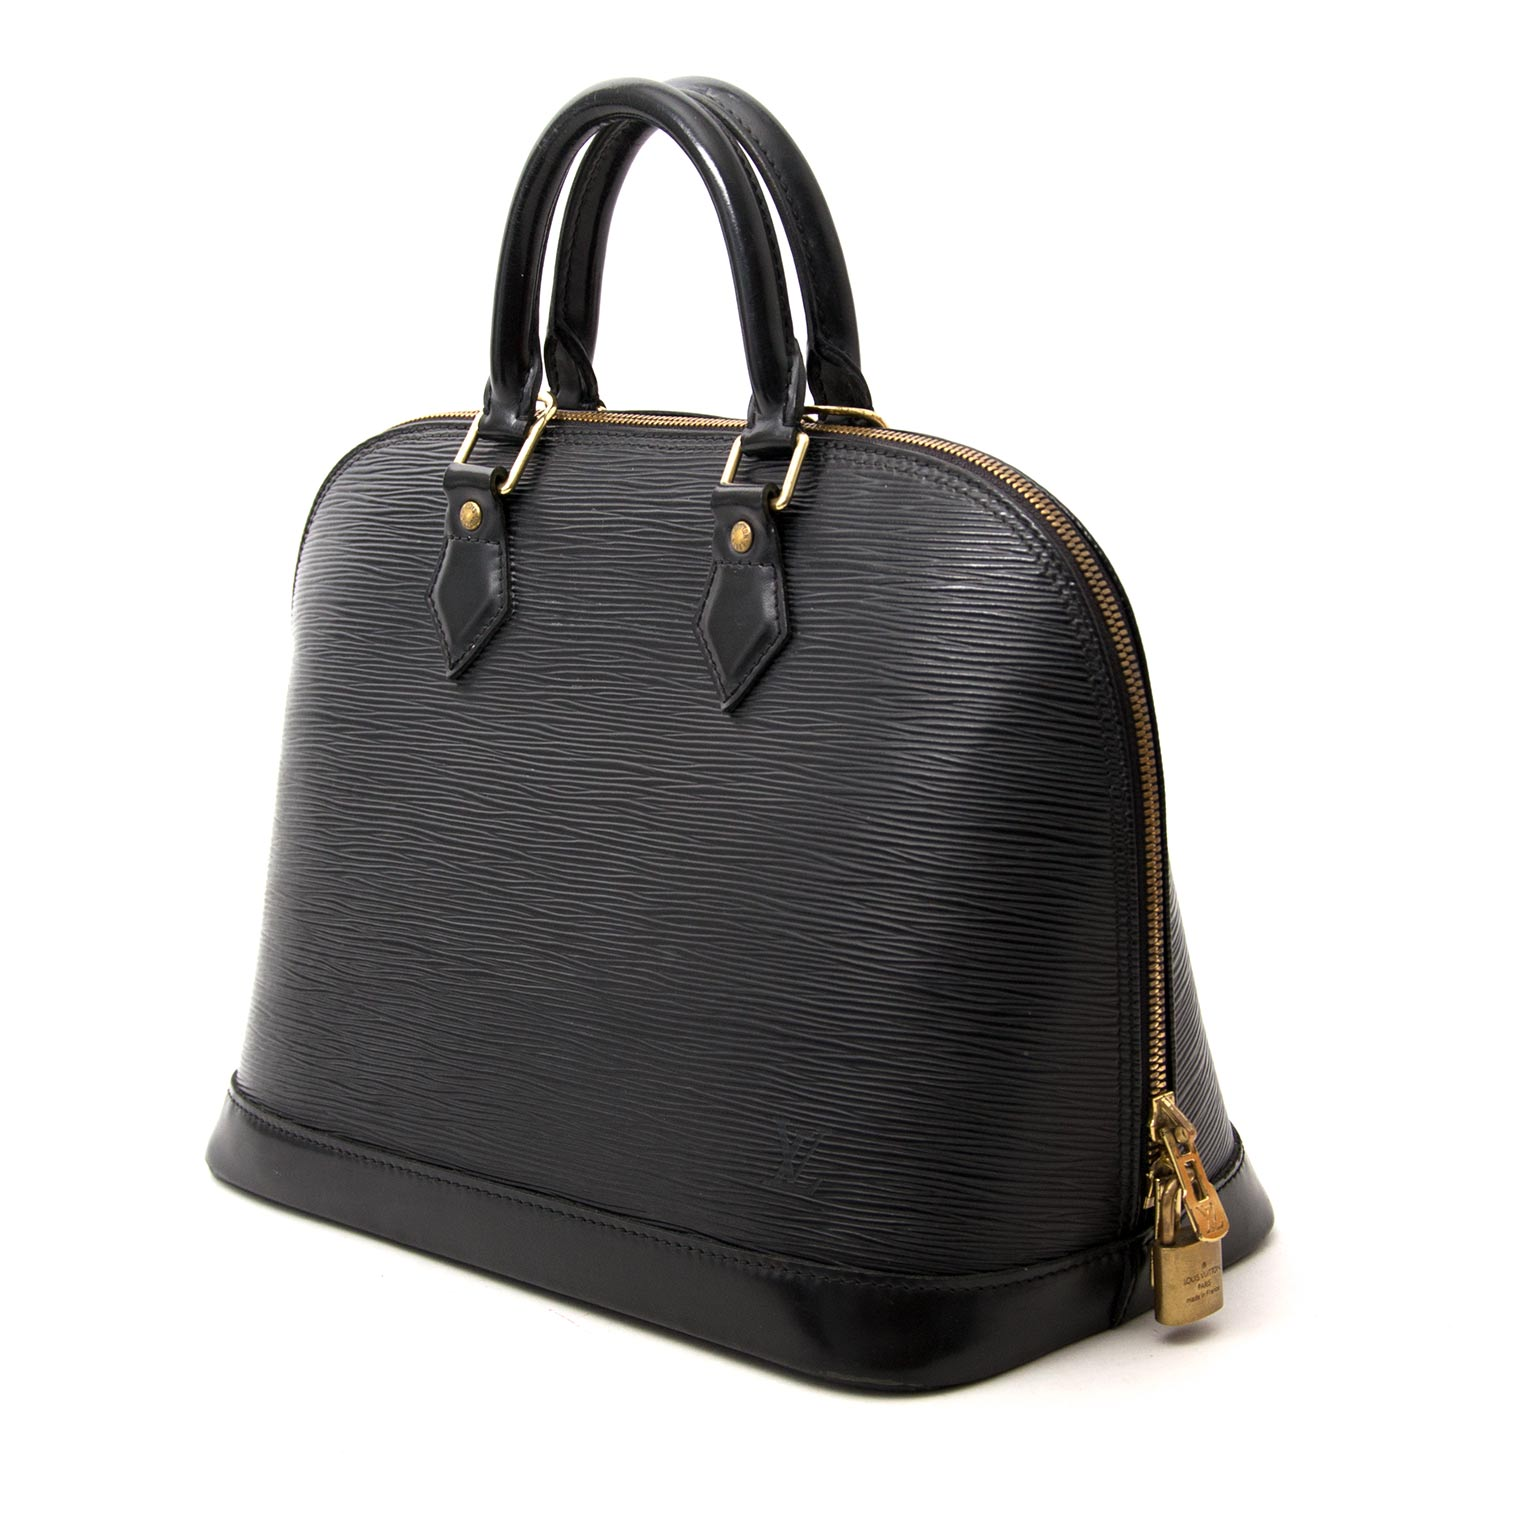 Louis Vuitton Alma Black Epi now online at labellov.com for the best price